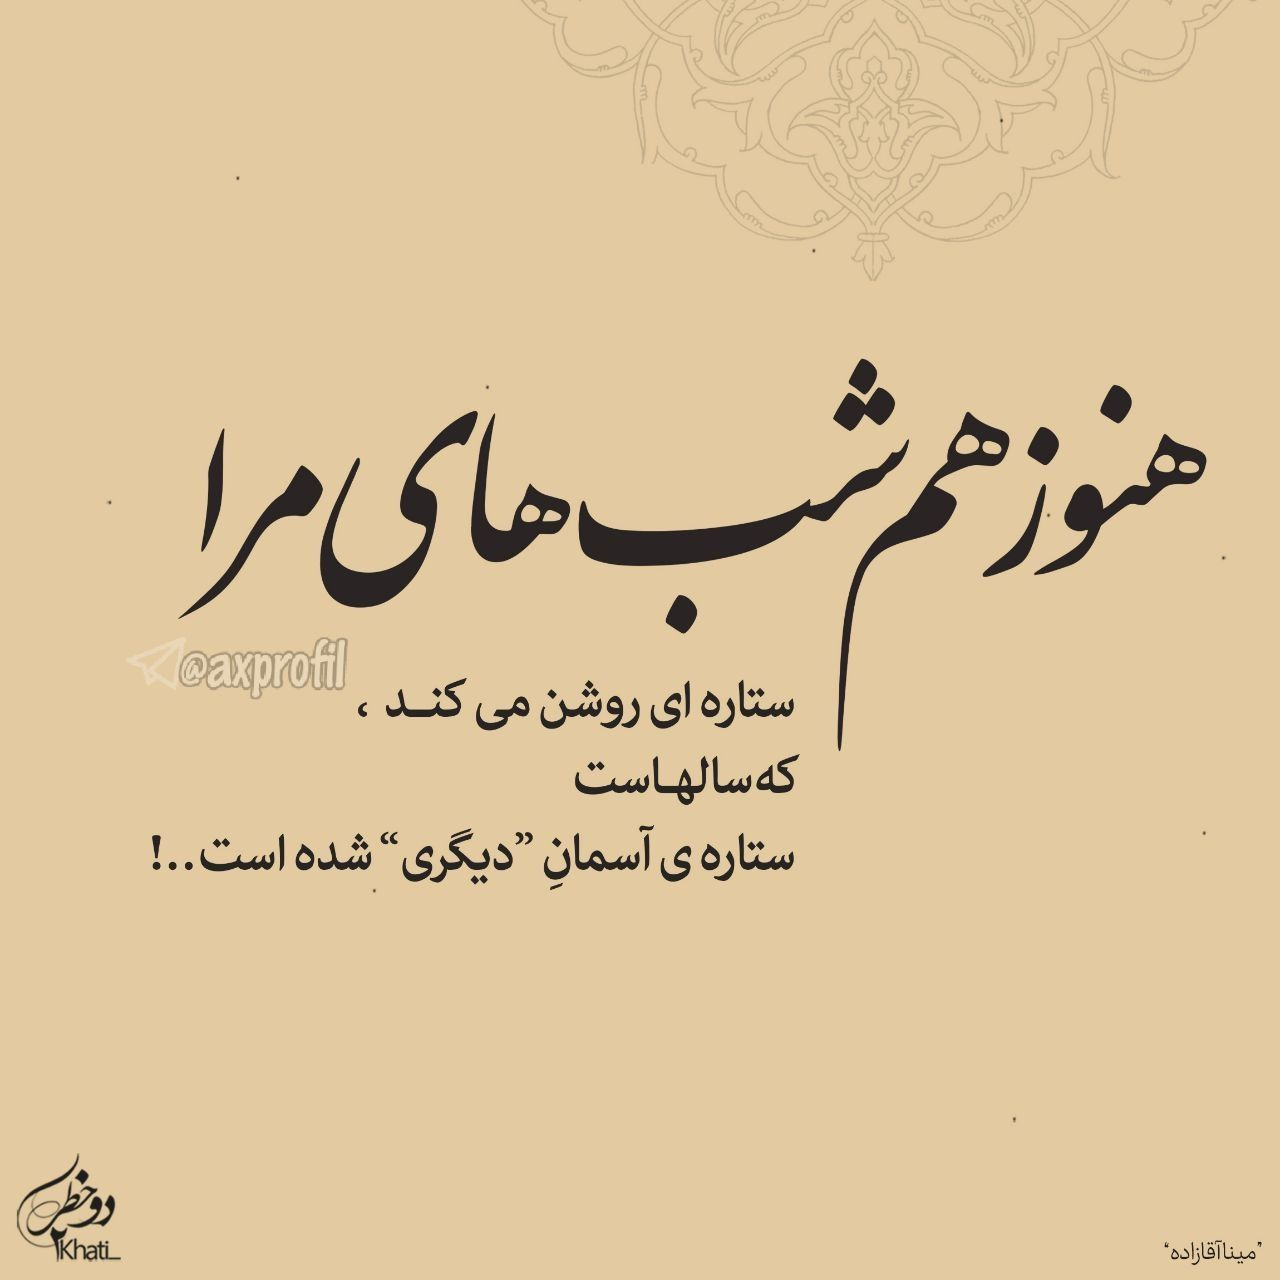 Pin By ᘔᗩᕼᖇᗩ On Farsi Quotes Persian Quotes Good Sentences Text On Photo